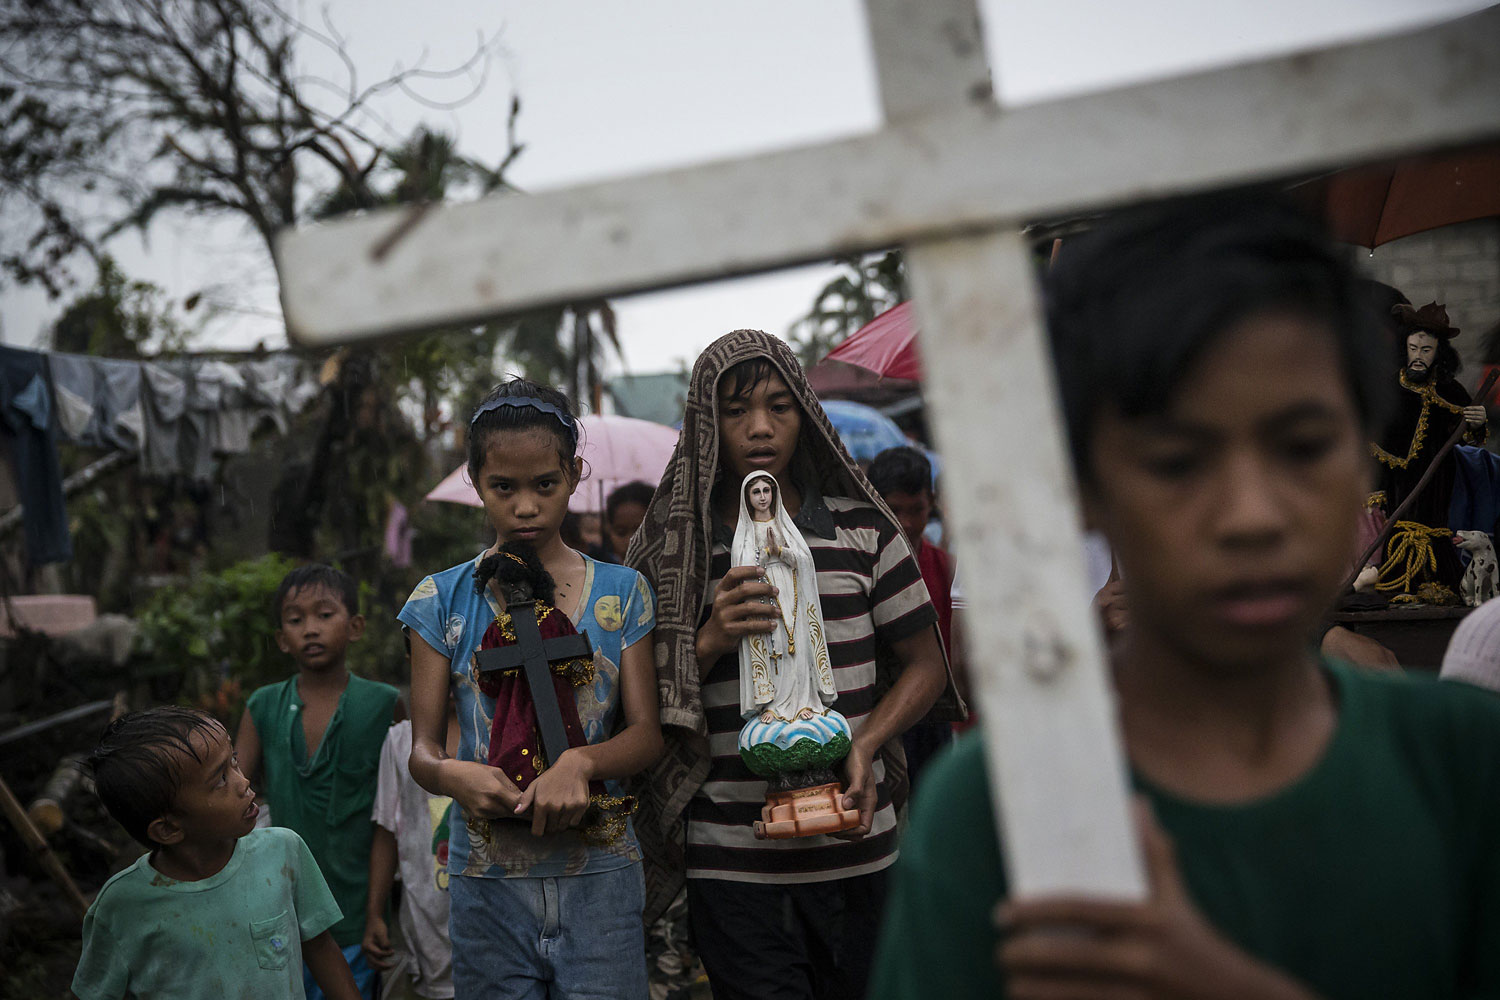 Villagers carry religious statues during a procession before taking part in a Latin mass ceremony at a local Chapel in Santa Rita township on November 22, 2013 in Eastern Samar, Philippines.